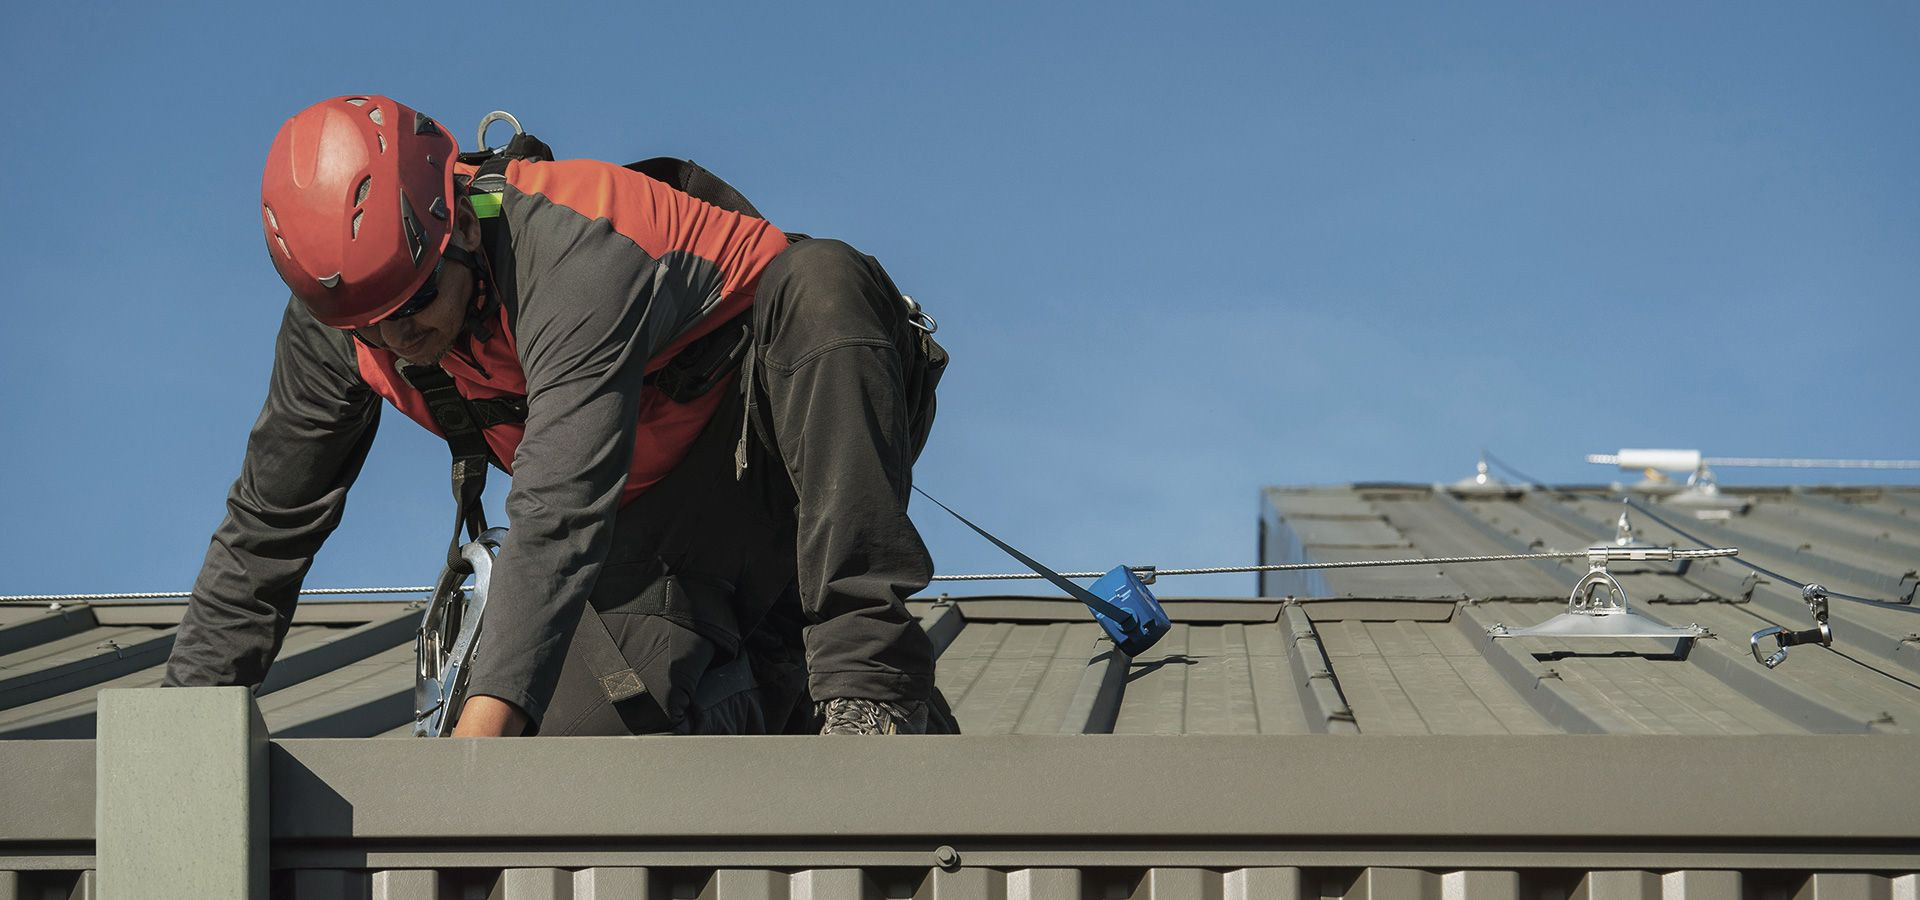 Securing a roof with a Securope cable lifeline